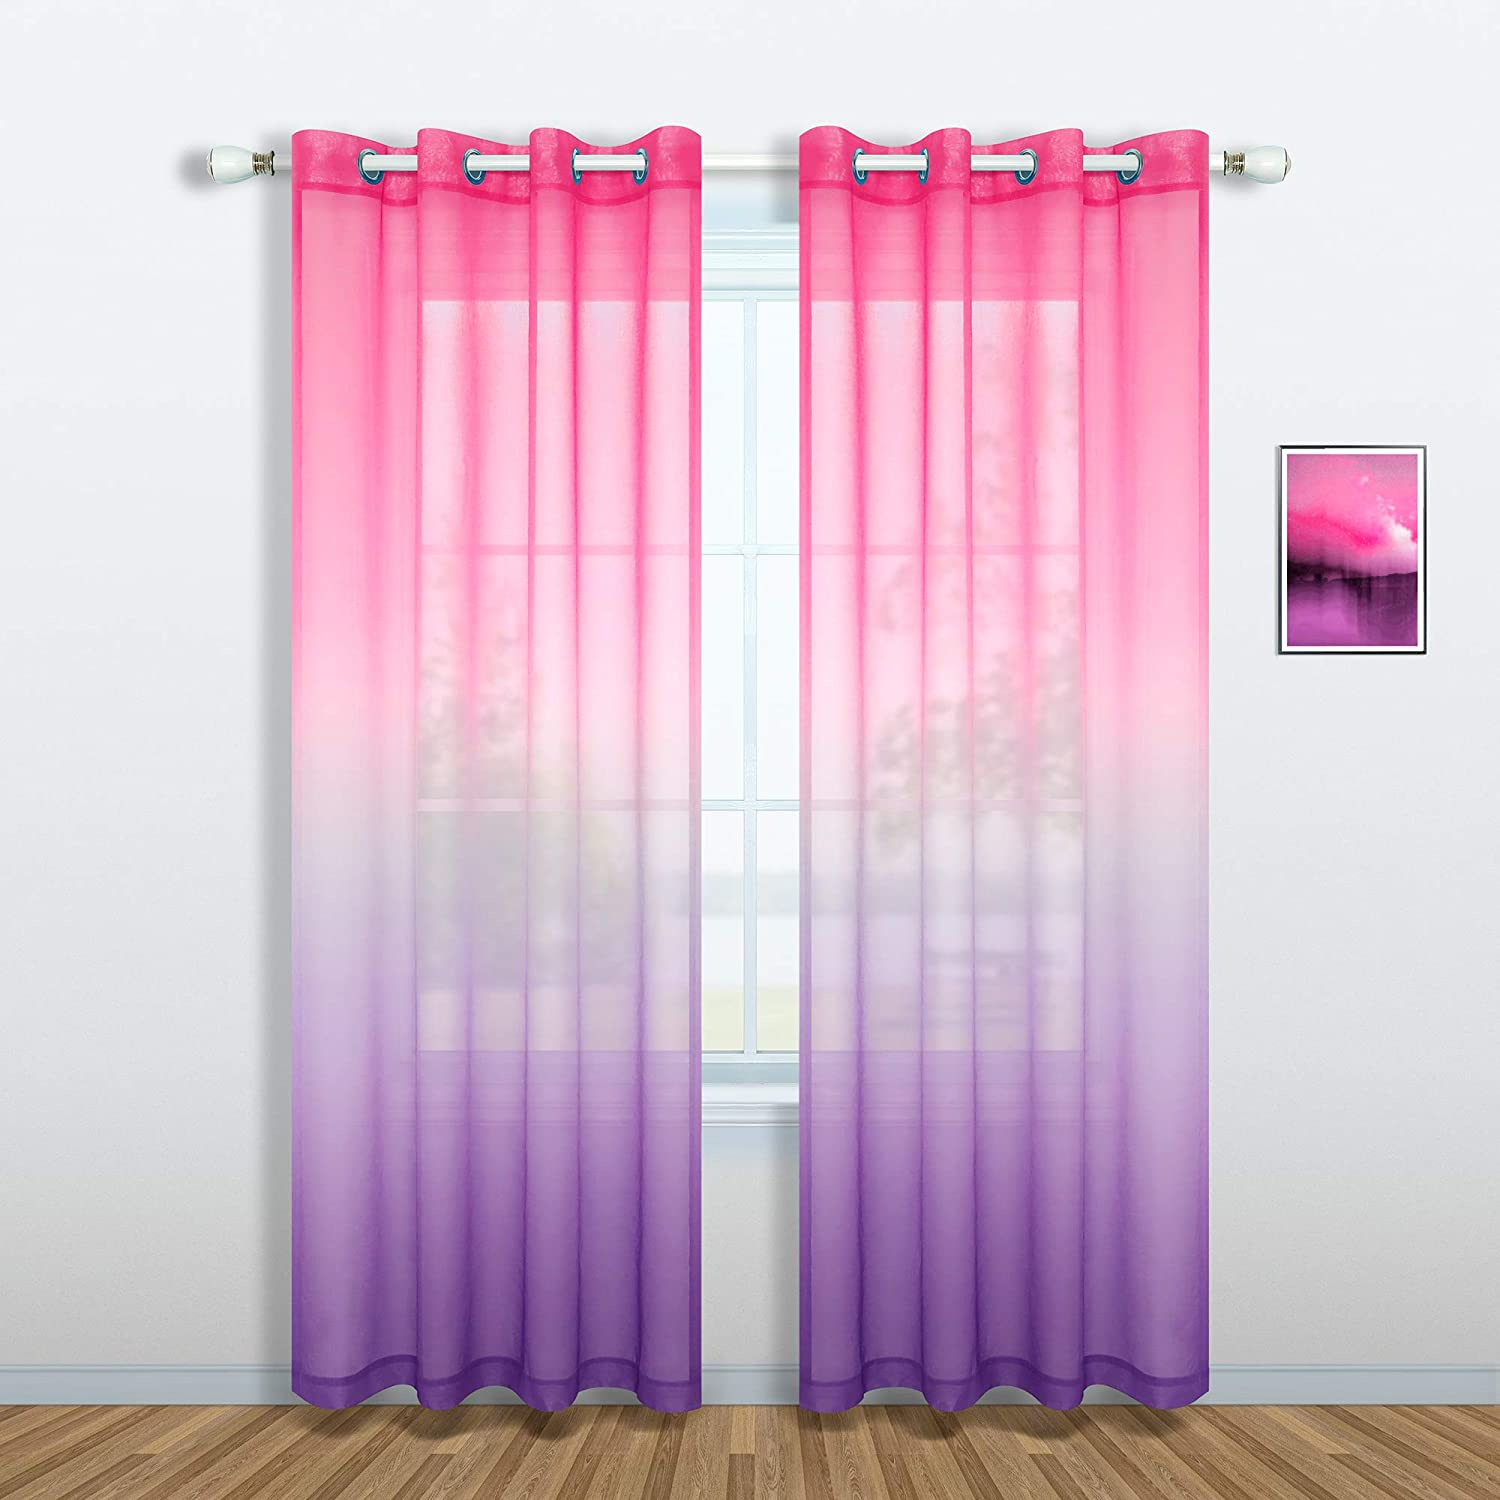 Pink and Purple Curtains for Girls Bedroom Decor Set 1 Single Panel Grommet Window Voile Pastel Sheer Ombre Rainbow Curtain for Kid Room Decoration Teen Princess 63 Inch Length Gradient Lilac Lavender